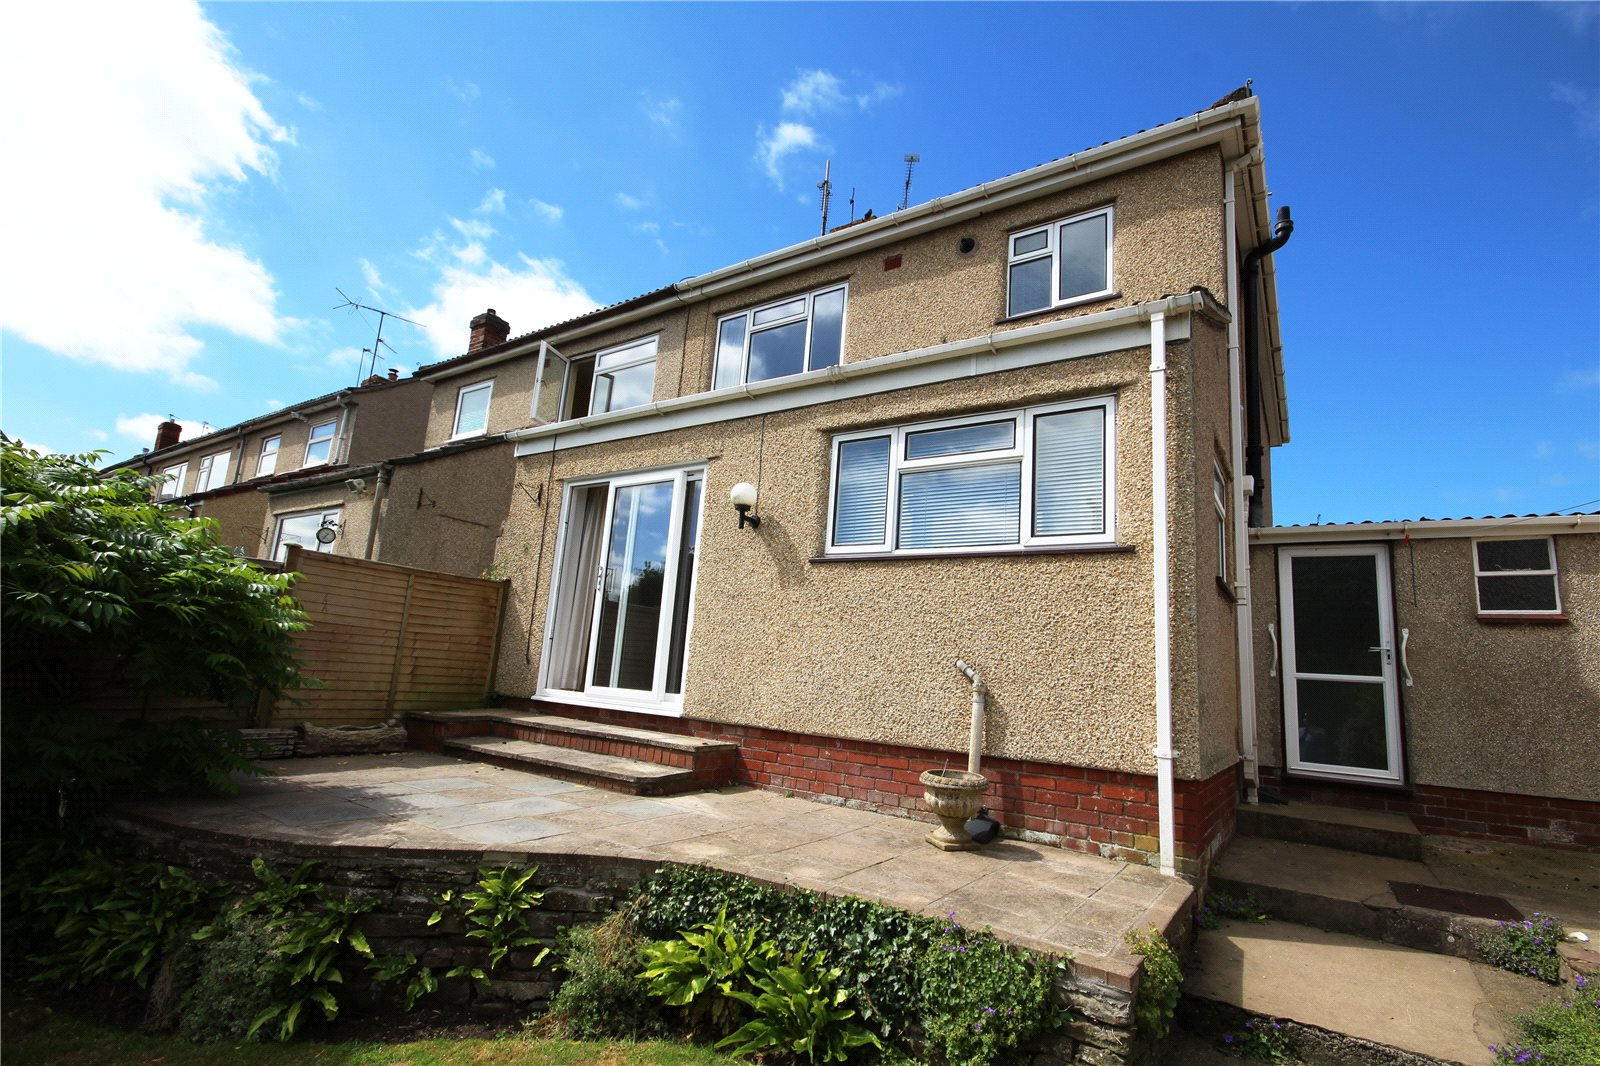 Cj Hole Downend 3 Bedroom House For Sale In Fouracre